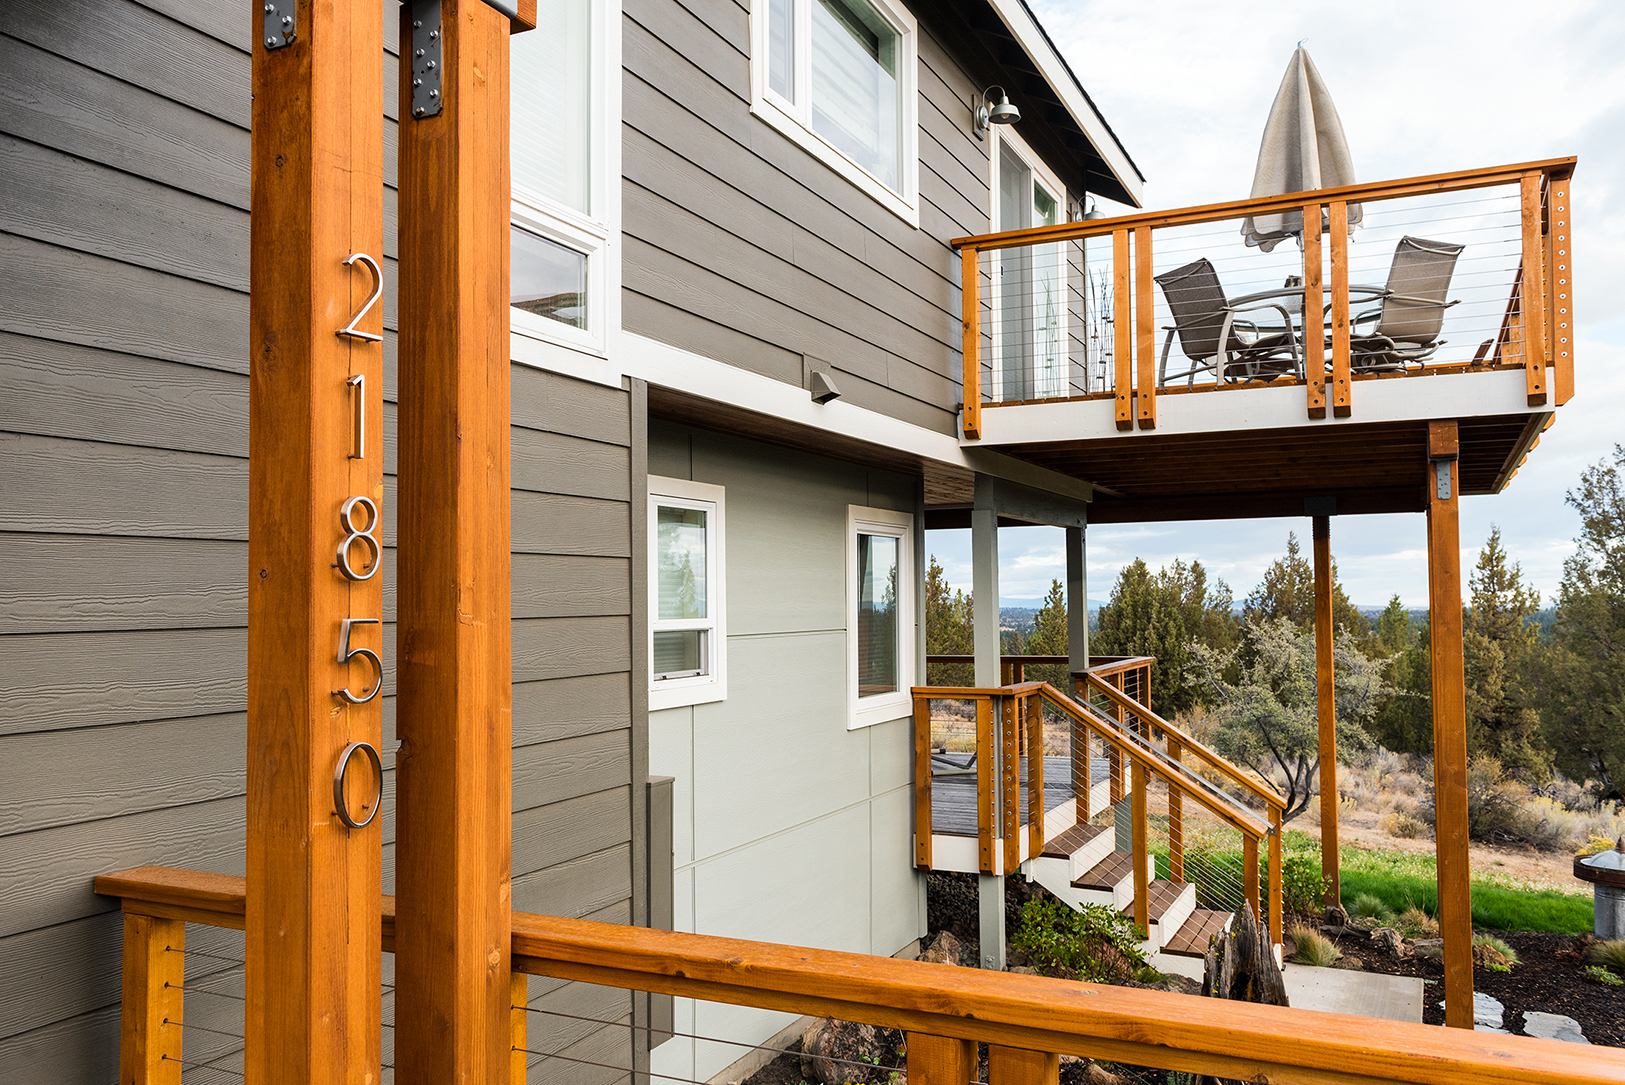 pgc-building-design-bend-oregon-parno-rgb-1625px-PGC-8350